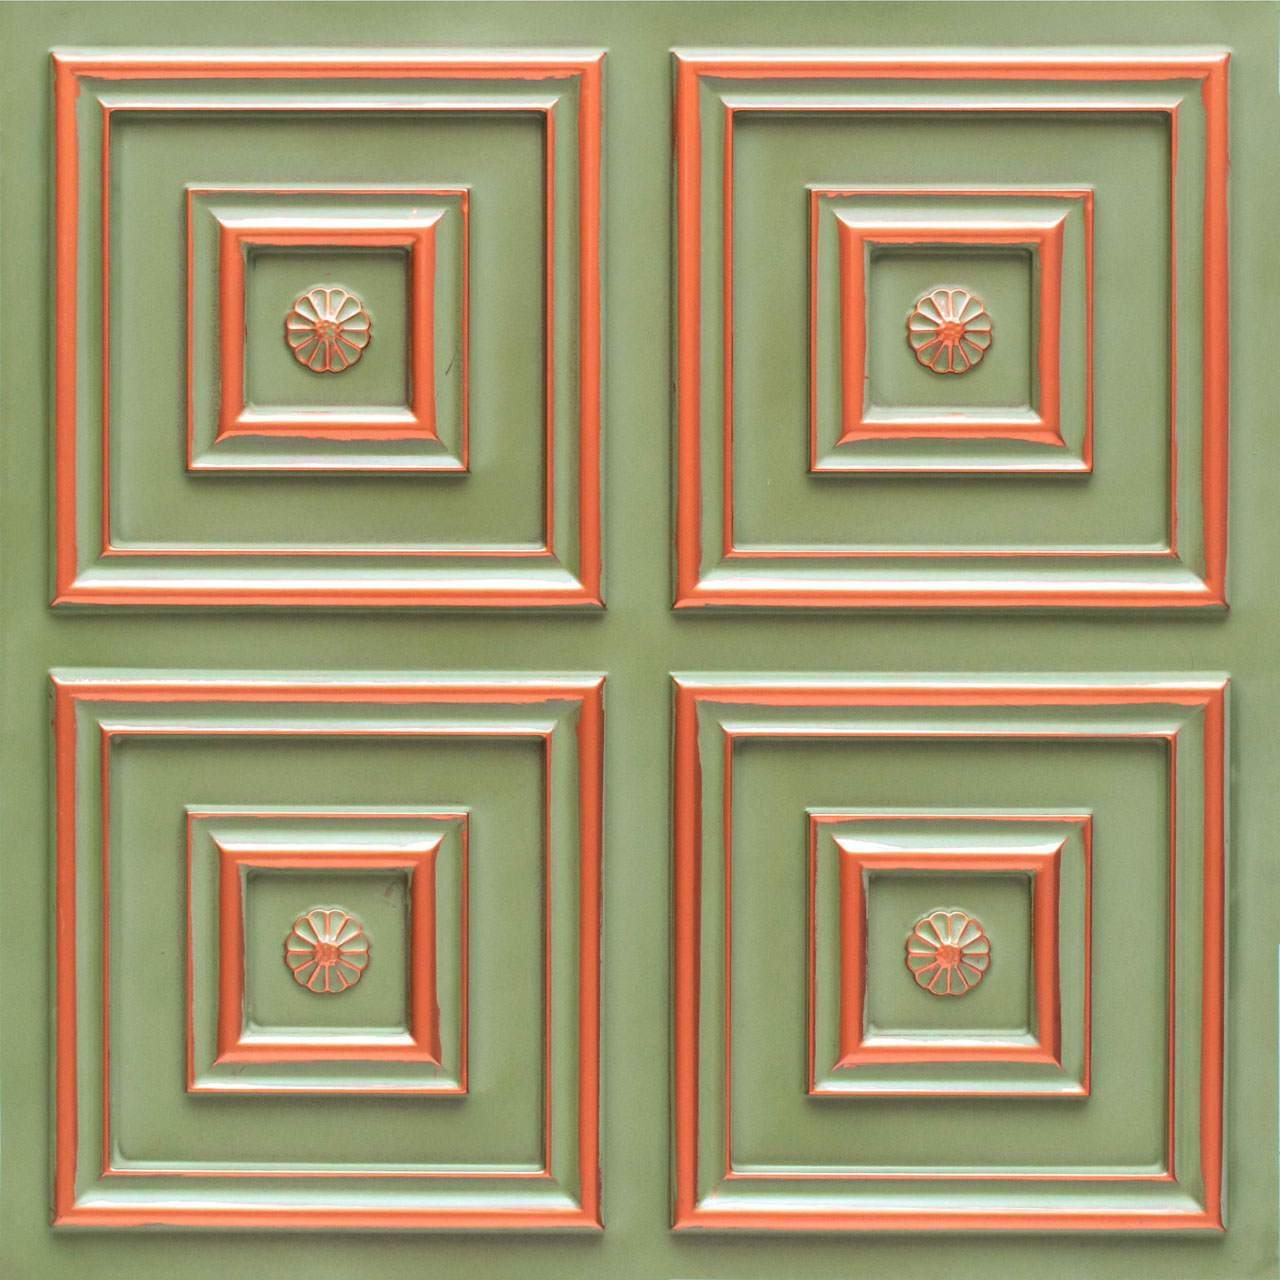 Deco Seashore - Faux Tin Ceiling Tile - Glue up - 24 in x 24 in - #112